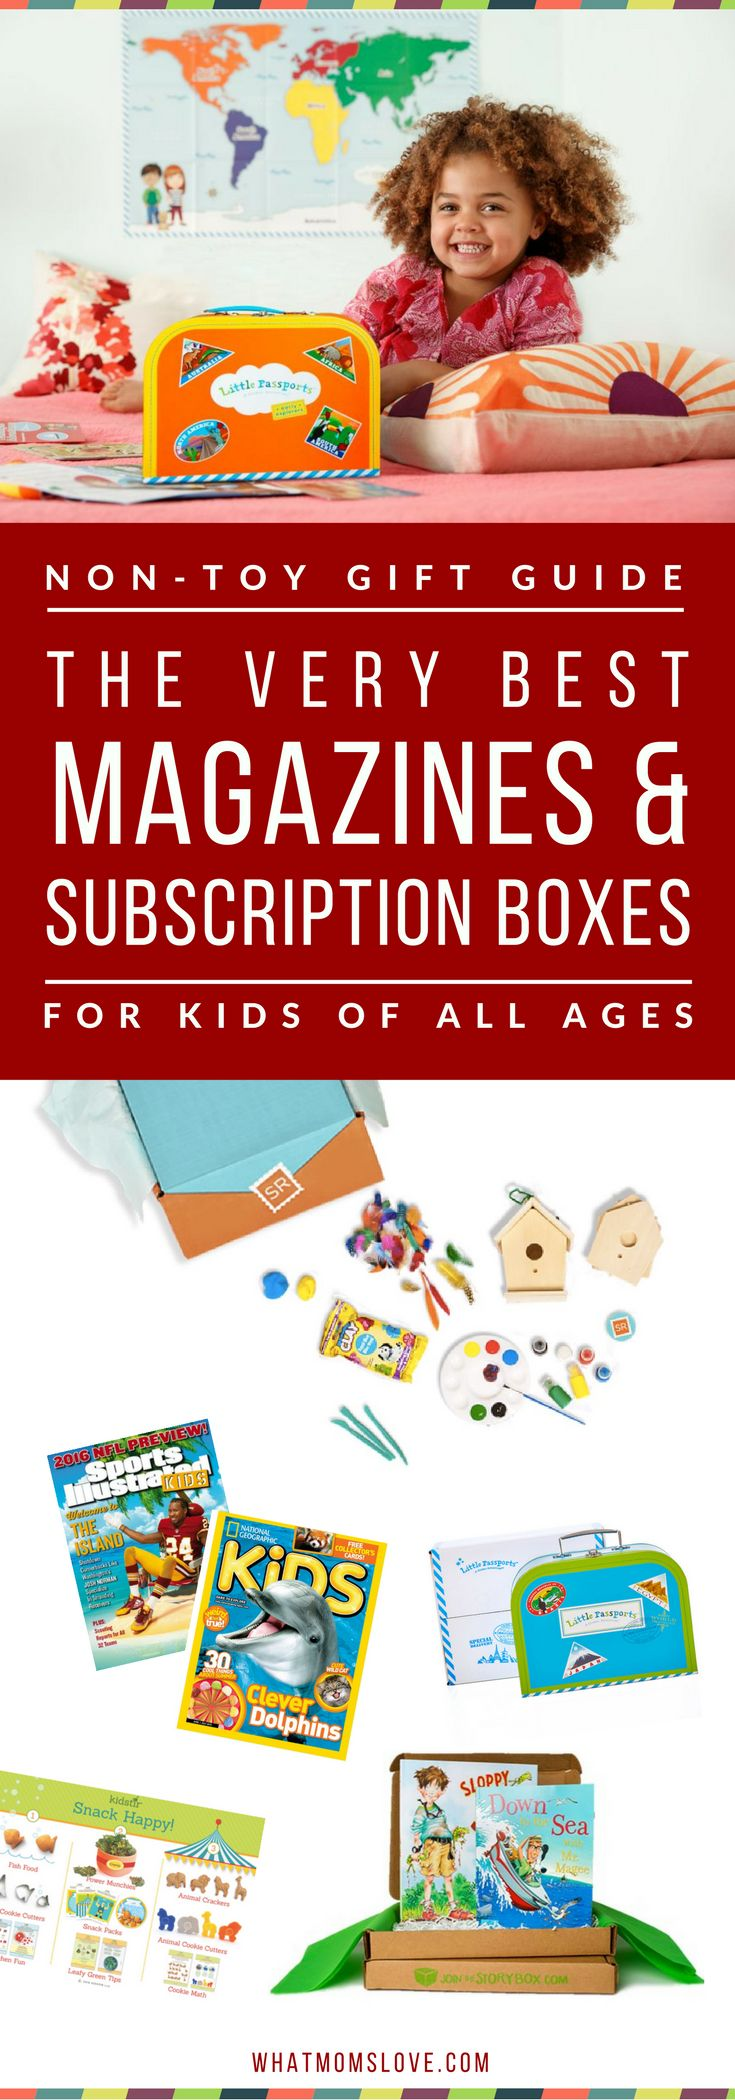 Best Magazine Subscriptions and Subscription Boxes for Kids - Part of the massive Non-Toy Gift Guide with over 200 ideas and product recommendations | Give a gift that will keep on giving with a these fun, educational and hands-on subscriptions that will be delivered in the mail! A perfect gift for kids for Holidays, birthdays and special occasions. Click for recommendations (kid and mom tested and approved!), or pin for later | from What Moms Love